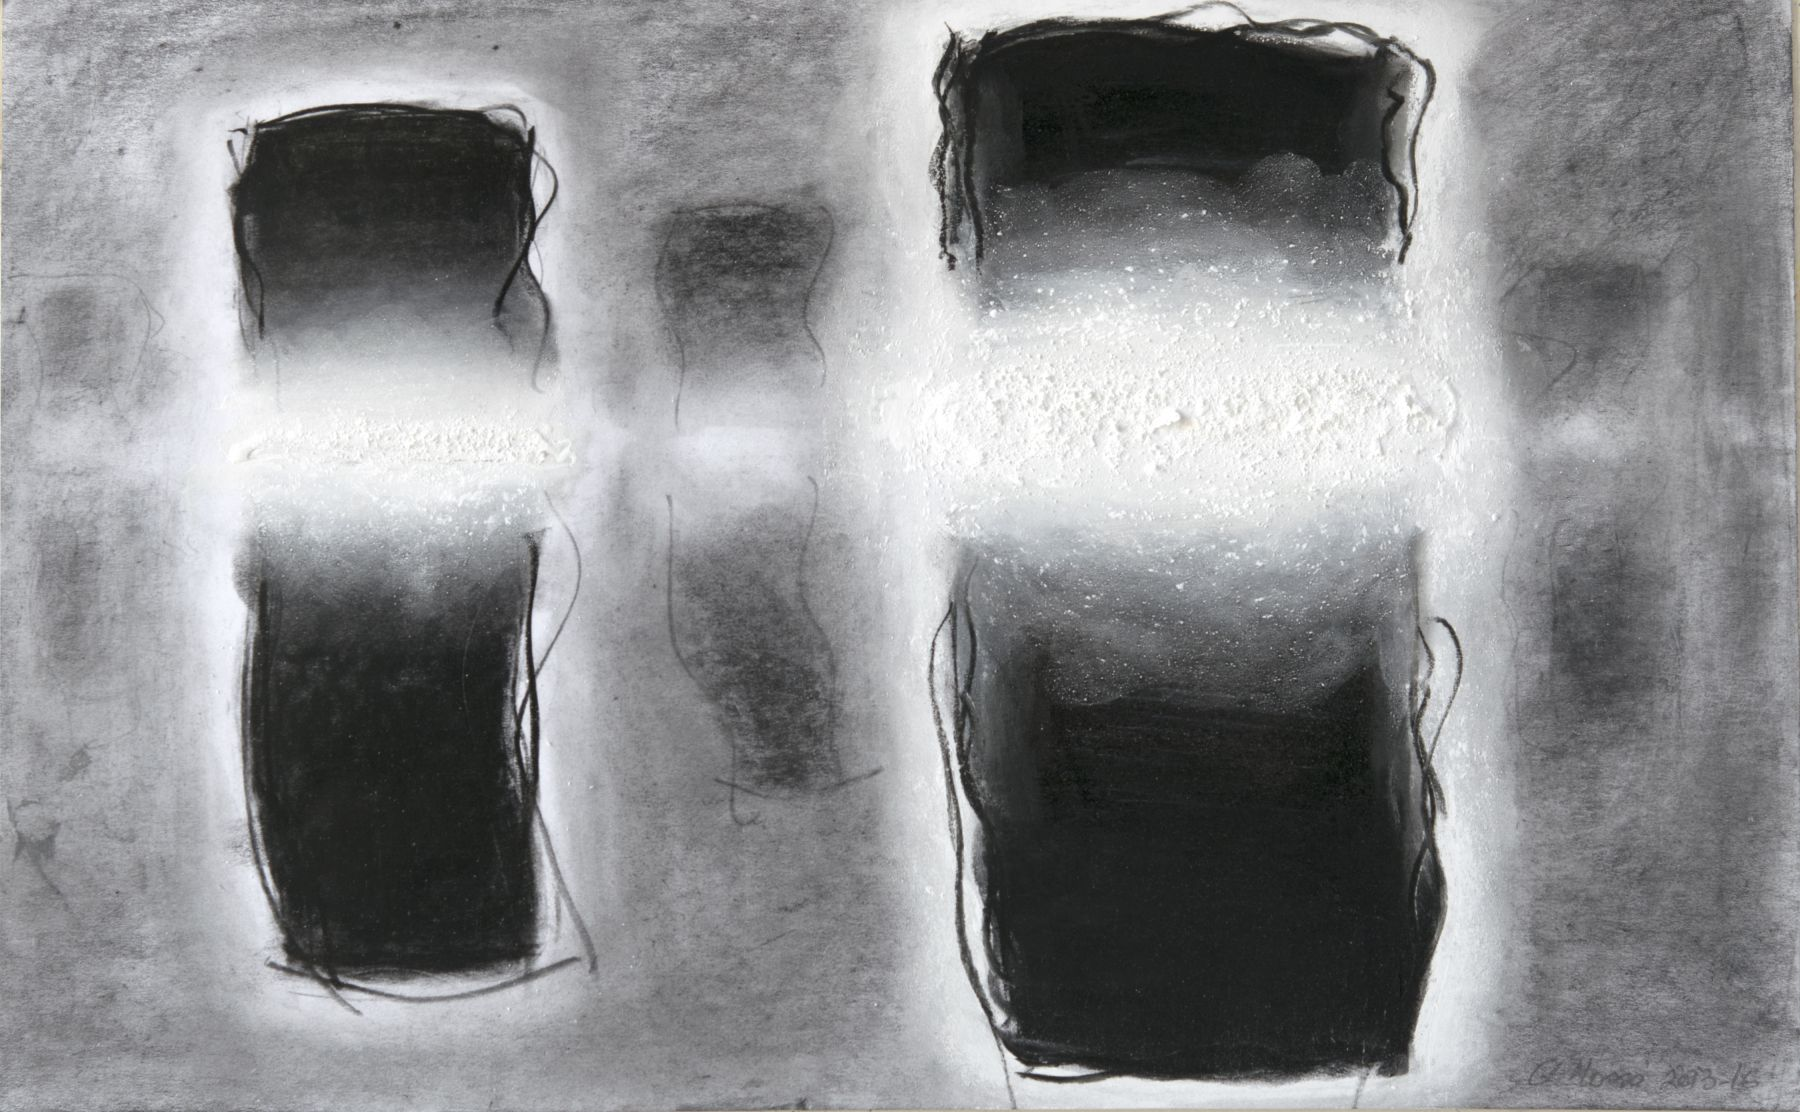 Gerard Mosse, B & W 1, 2013-16  10 3/8 x 17 in.   Graphite, conte crayon, charcoal, acrylic, and pigment on plate paper